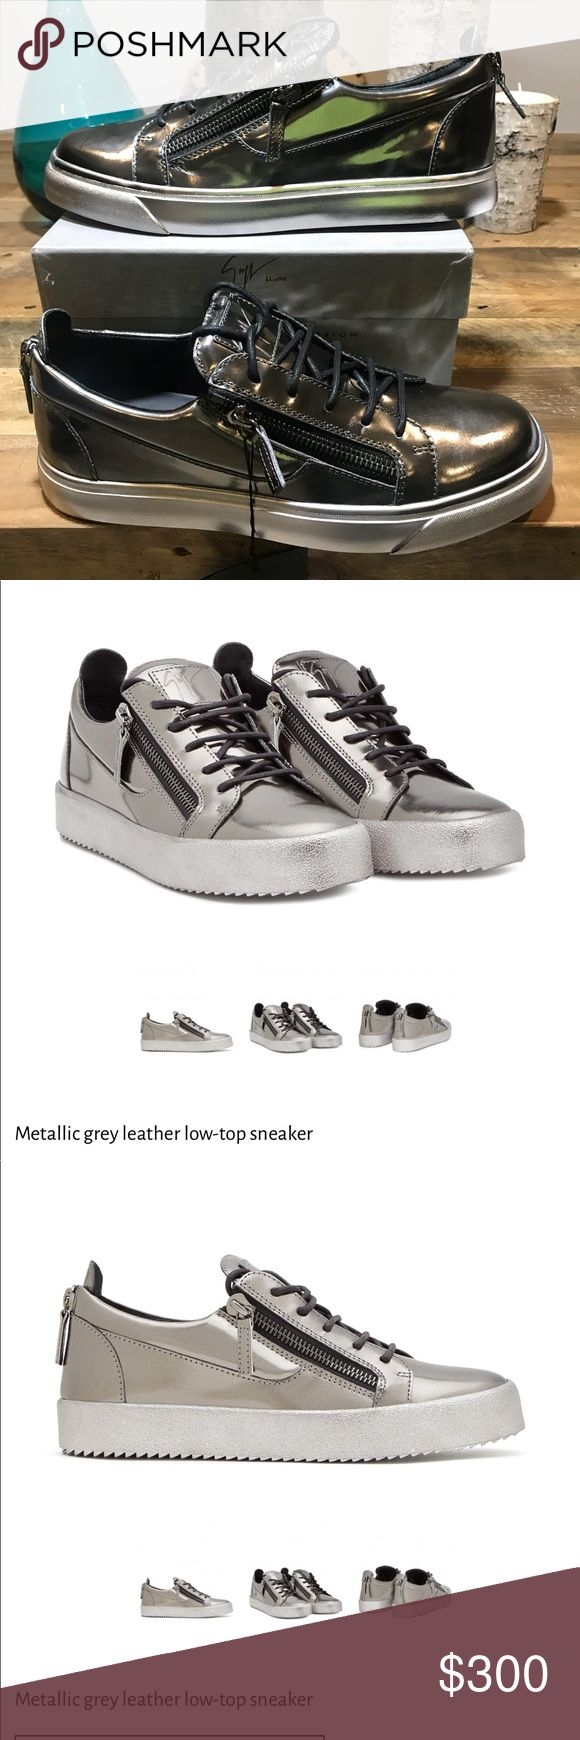 New Men Giuseppe Zanotti Sneakers 100%Authentic 44 Originally $750 100% Authentic Guaranteed  Sizes 11(44) 12(45) Men's sneaker Metallic grey patent leather upper Low-top Lace up style Rubber sole with logo Made in Italy Giuseppe Zanotti Shoes Sneakers